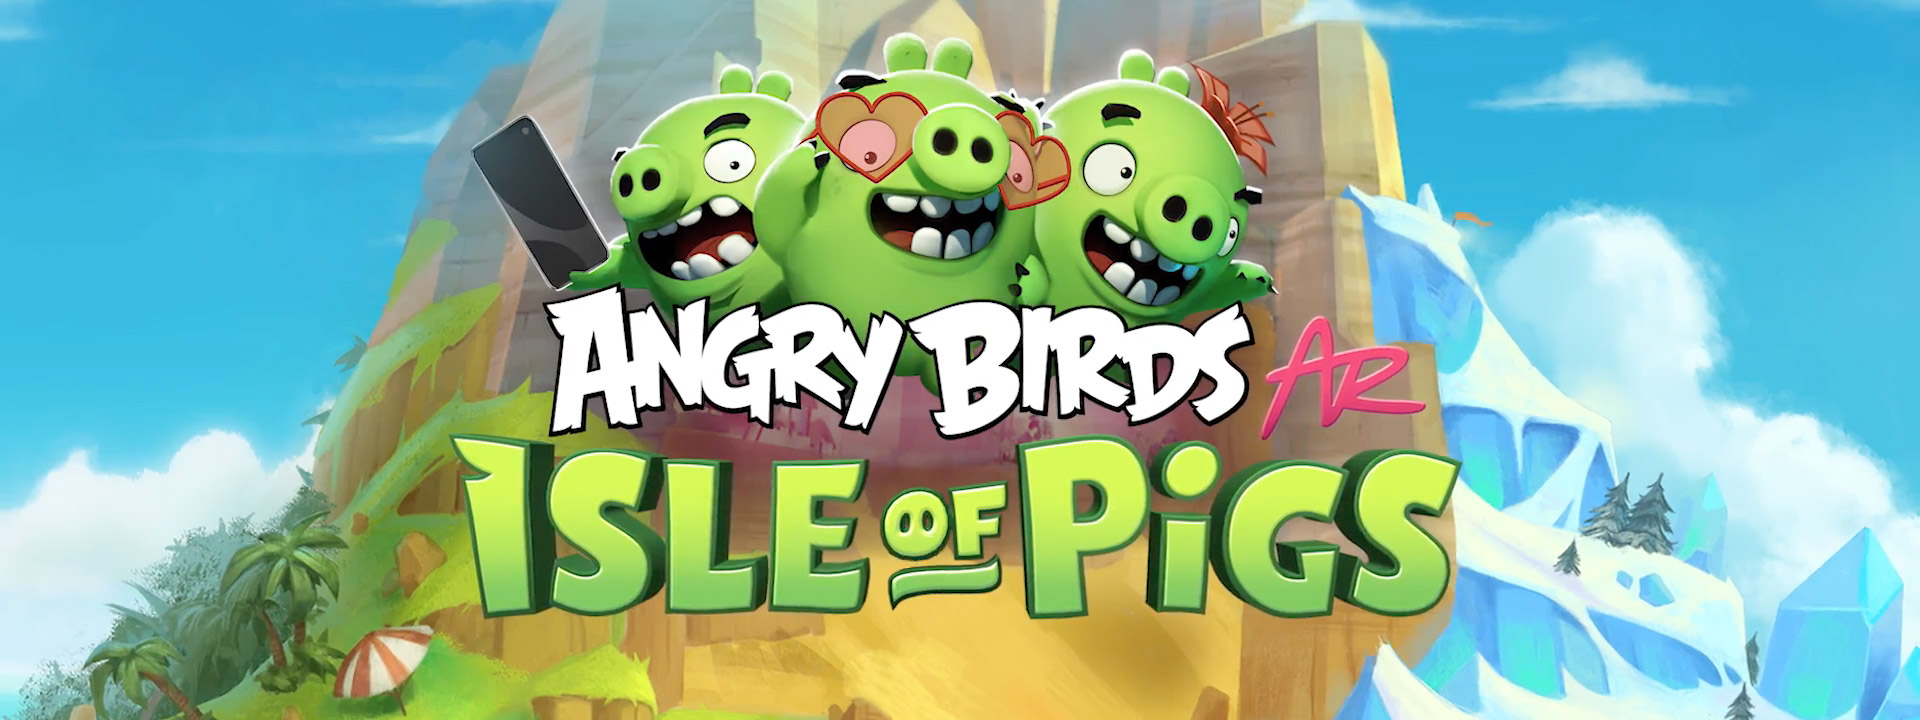 Pre-order the upcoming Angry Birds augmented reality game ahead of launch